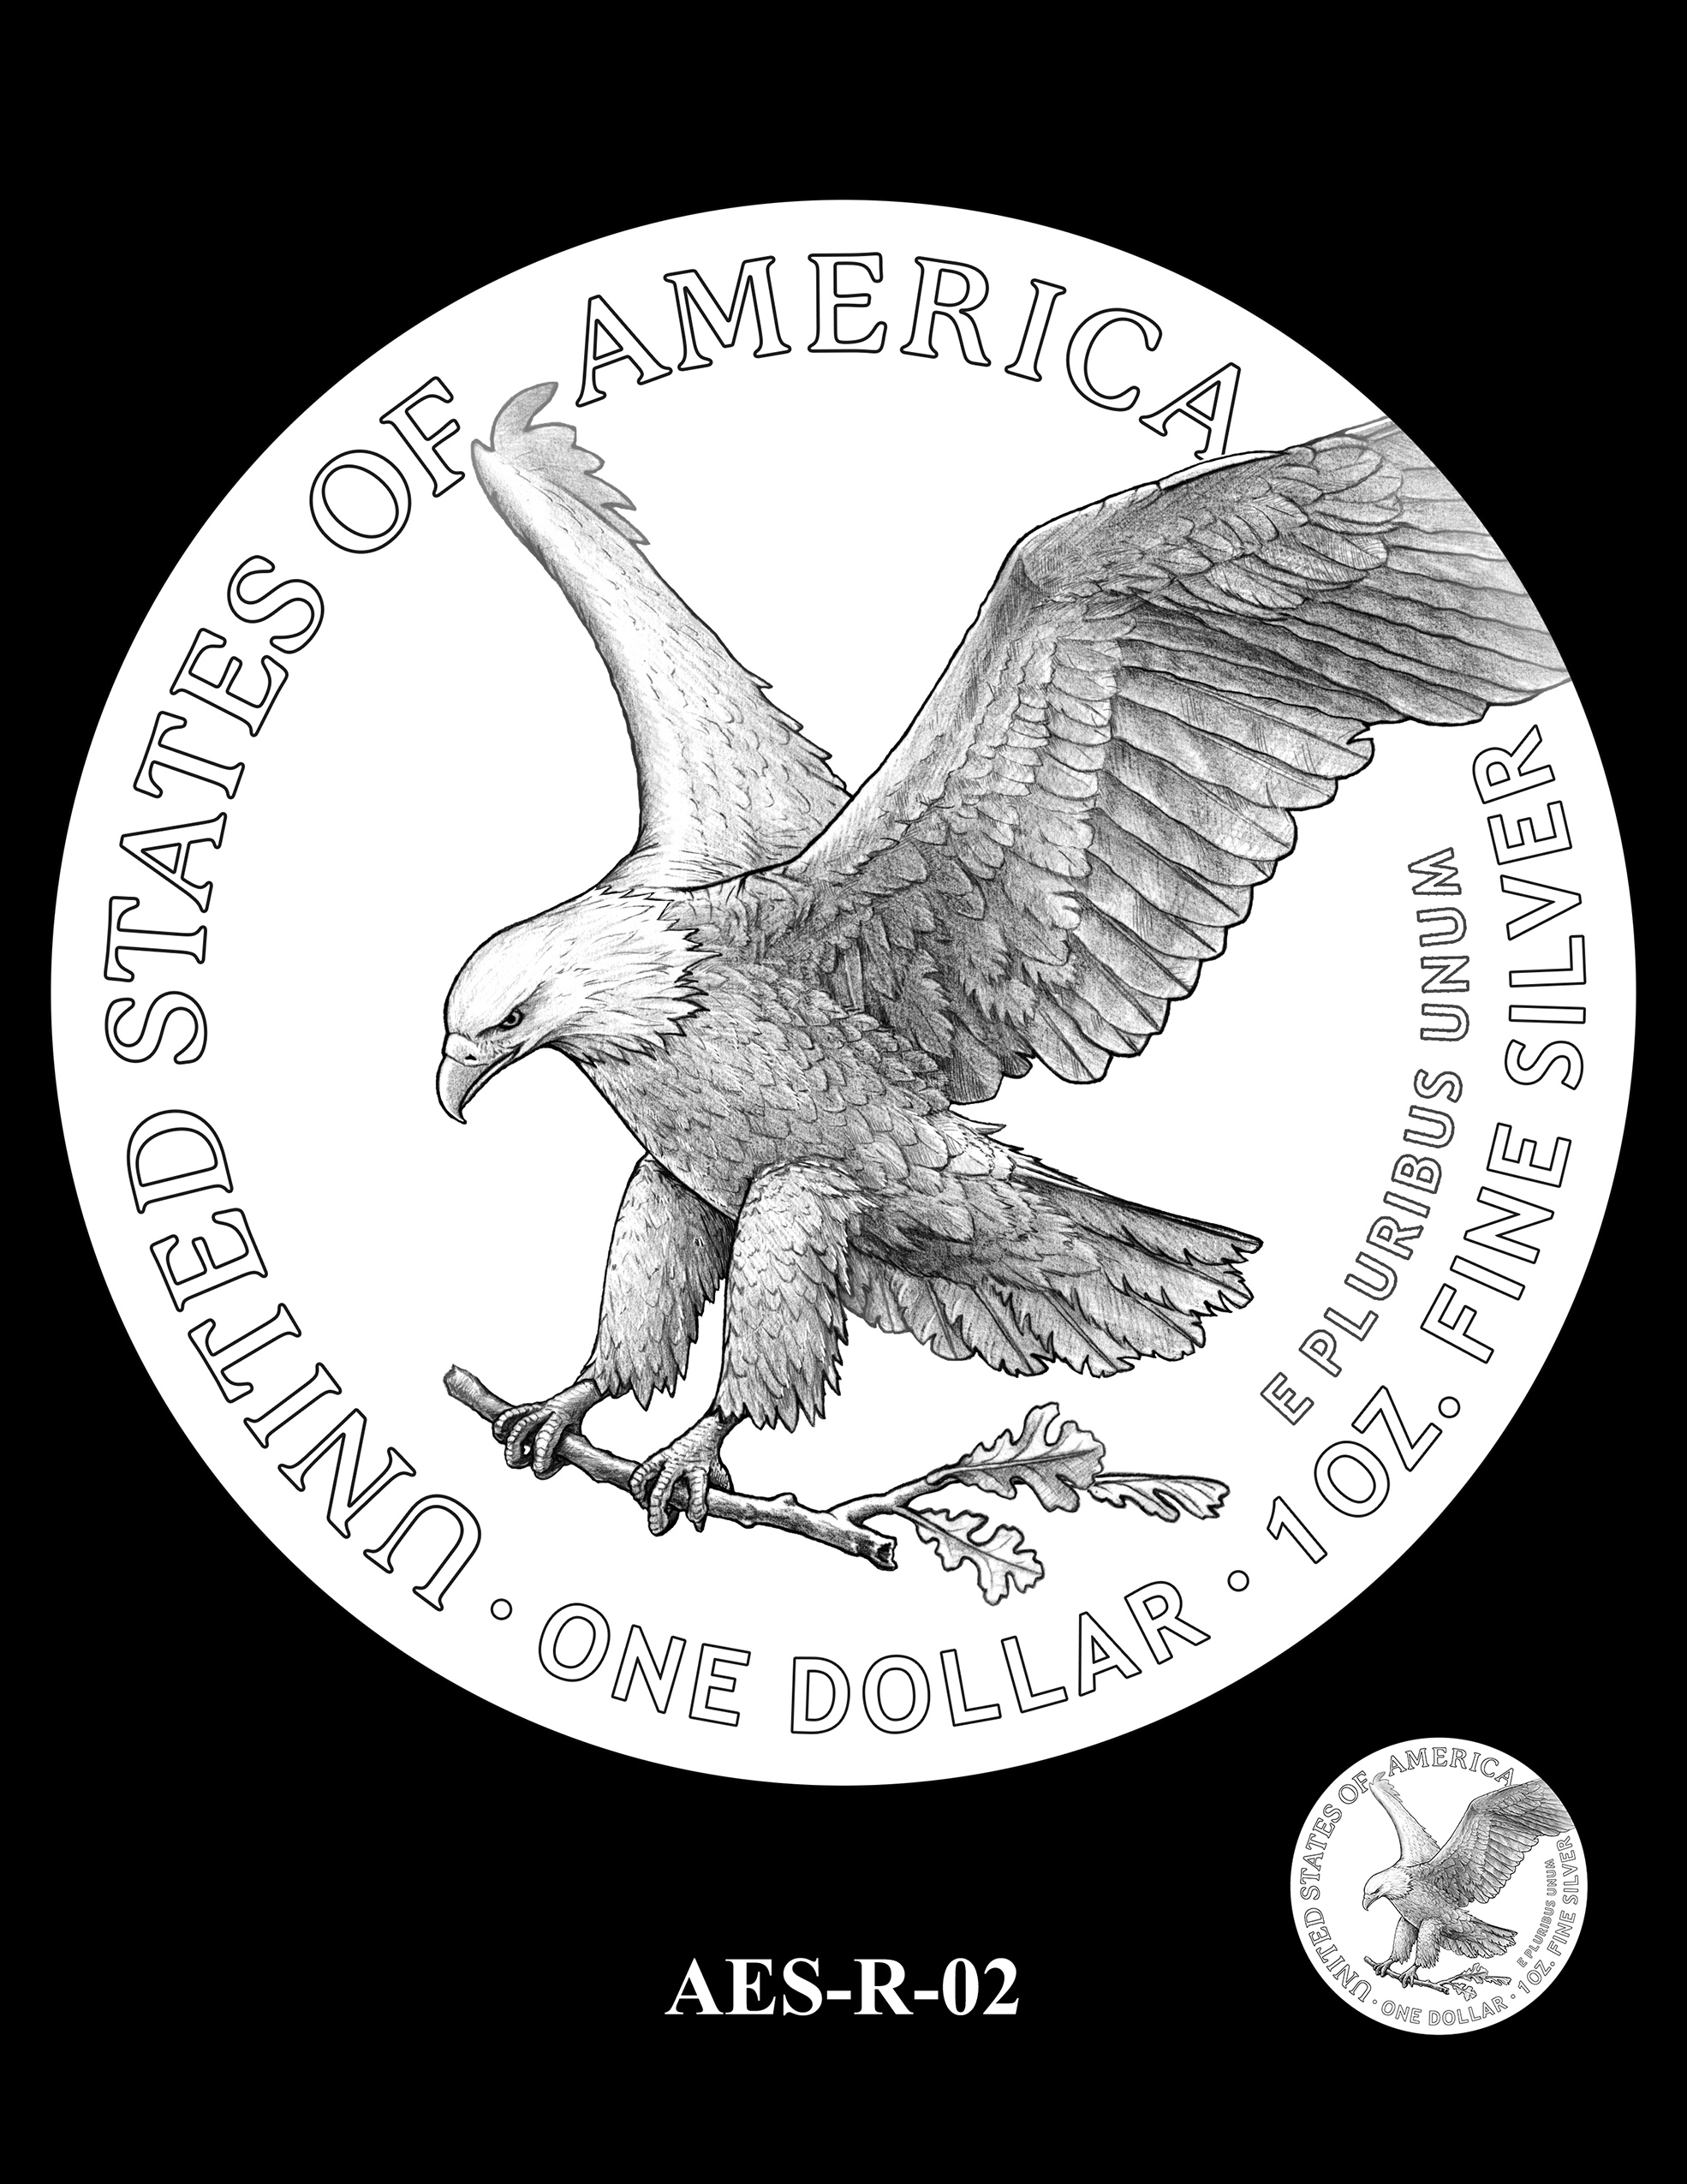 AES-R-02 -- American Eagle Proof and Bullion Silver Coin - Reverse